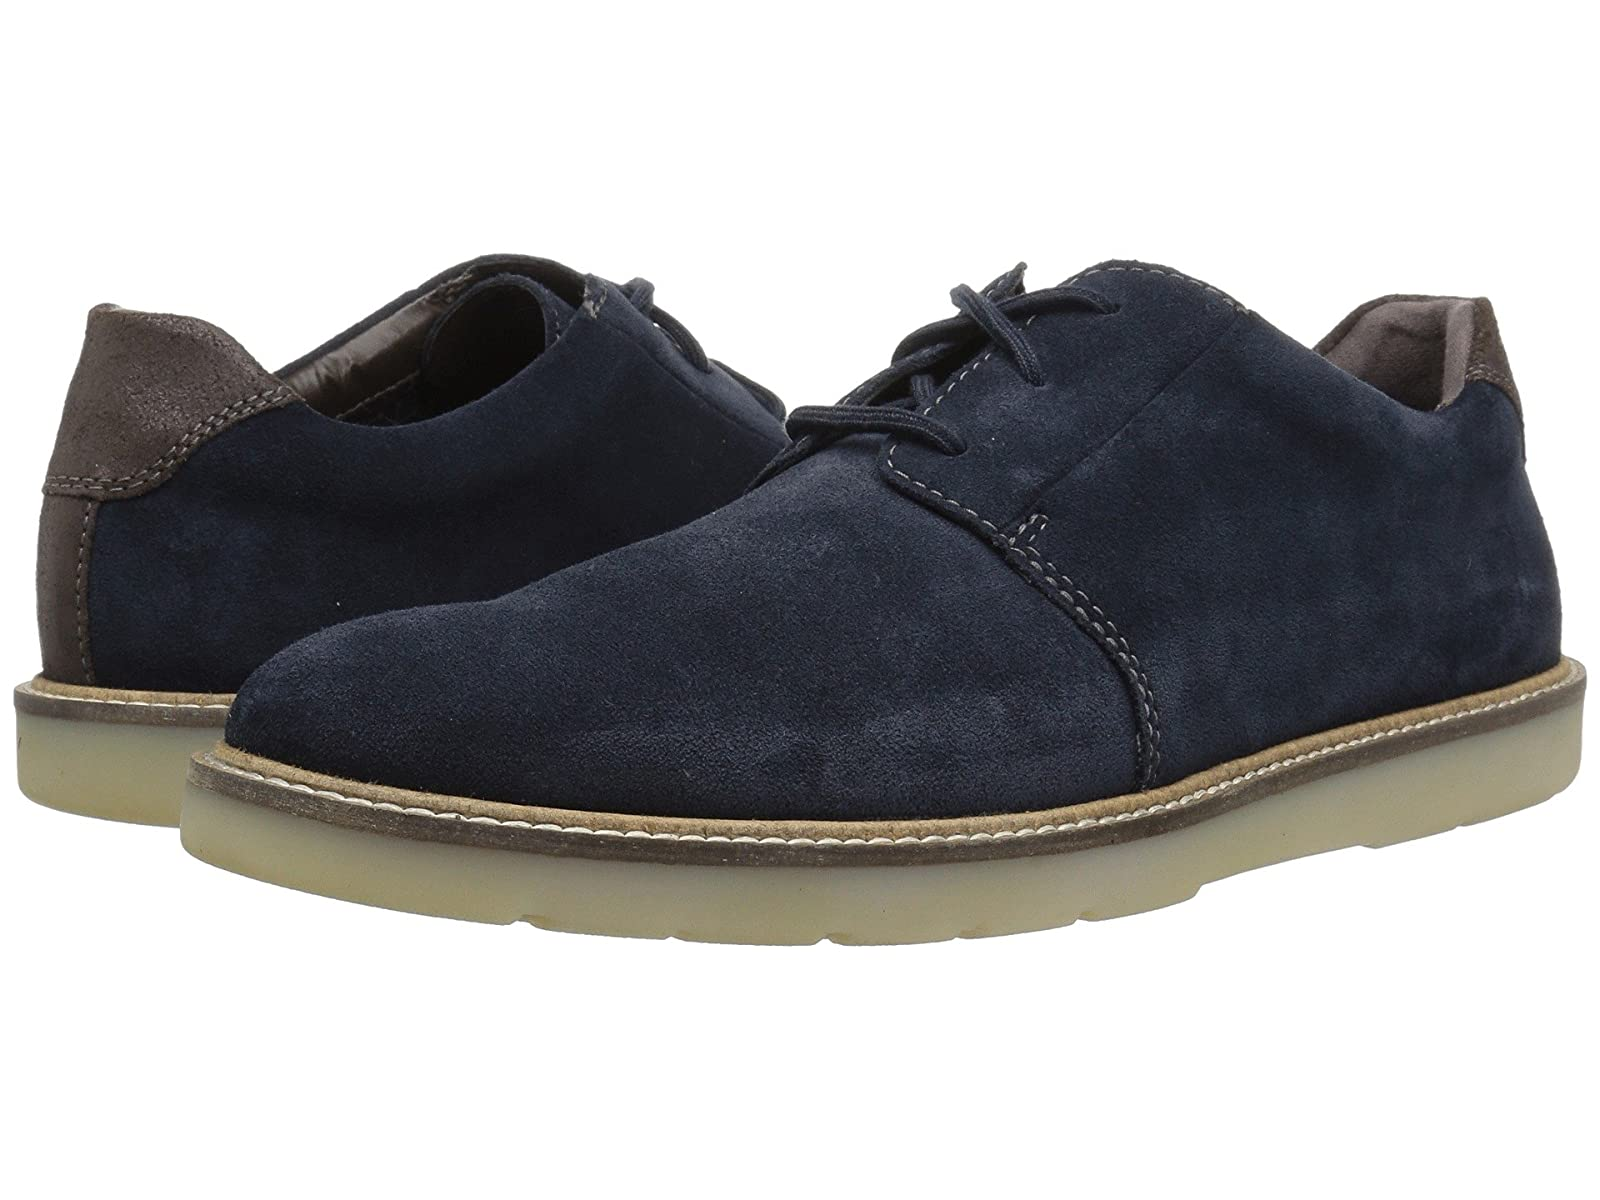 Clarks Grandin PlainCheap and distinctive eye-catching shoes